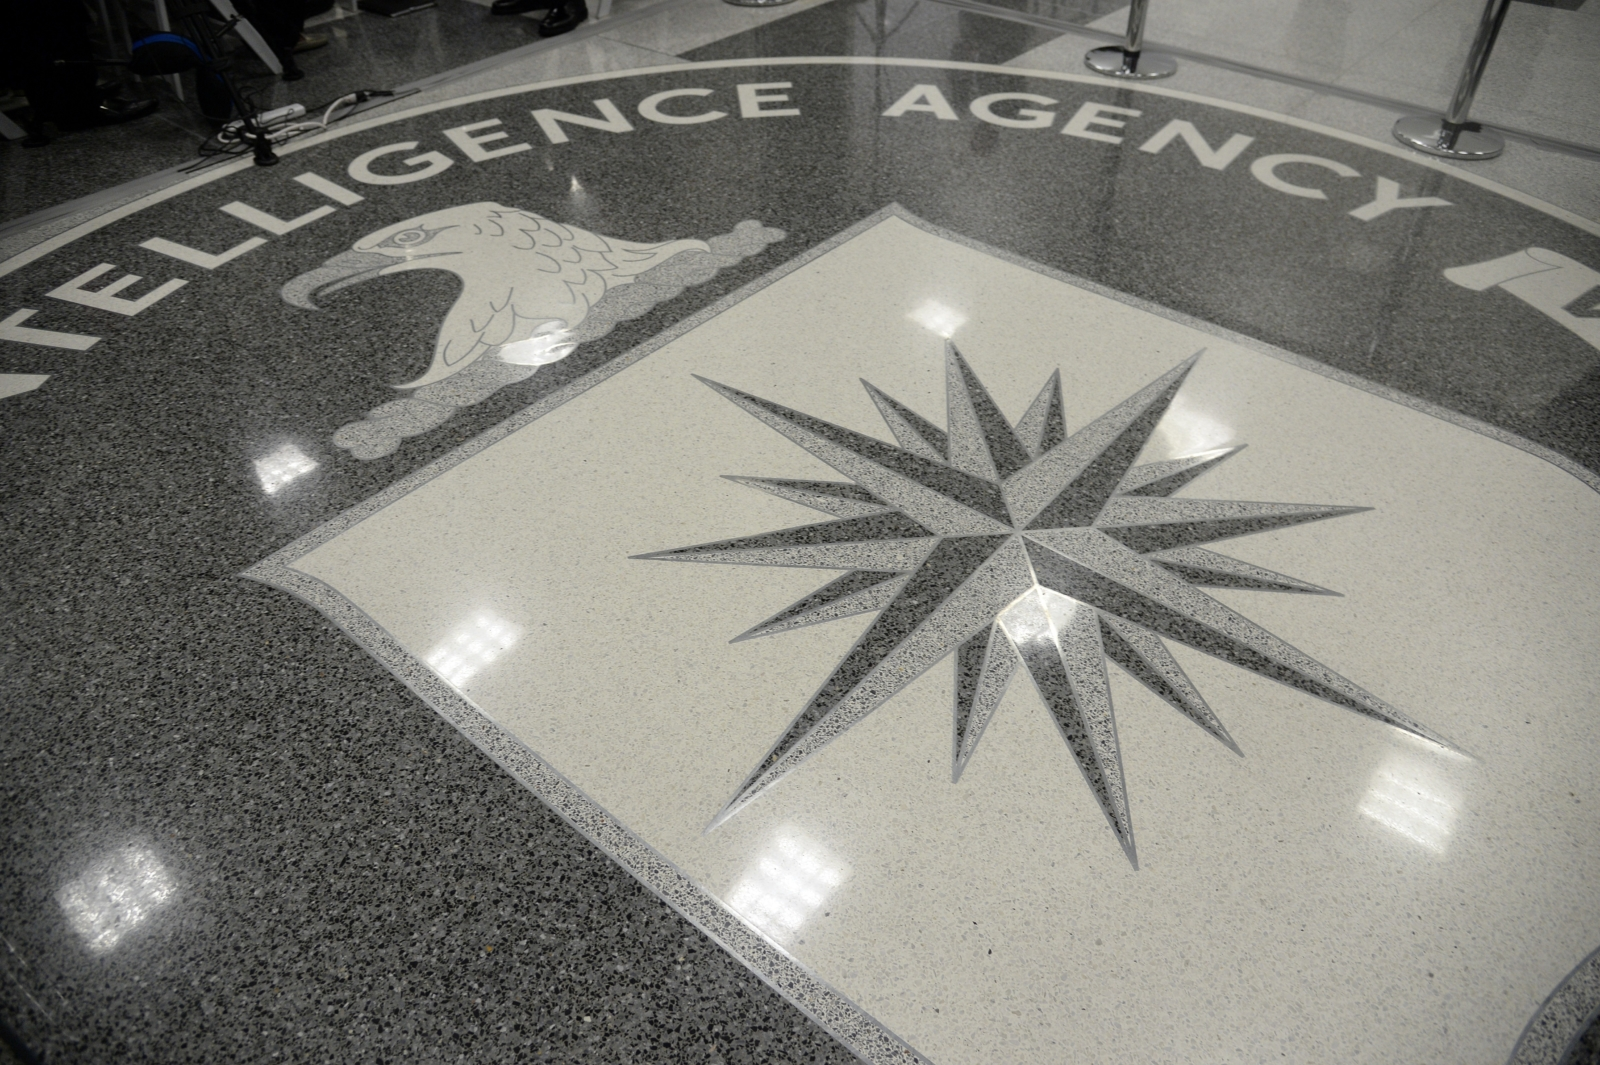 USA: WikiLeaks revelation on CIA hacking underscores how vulnerable our privacy really is